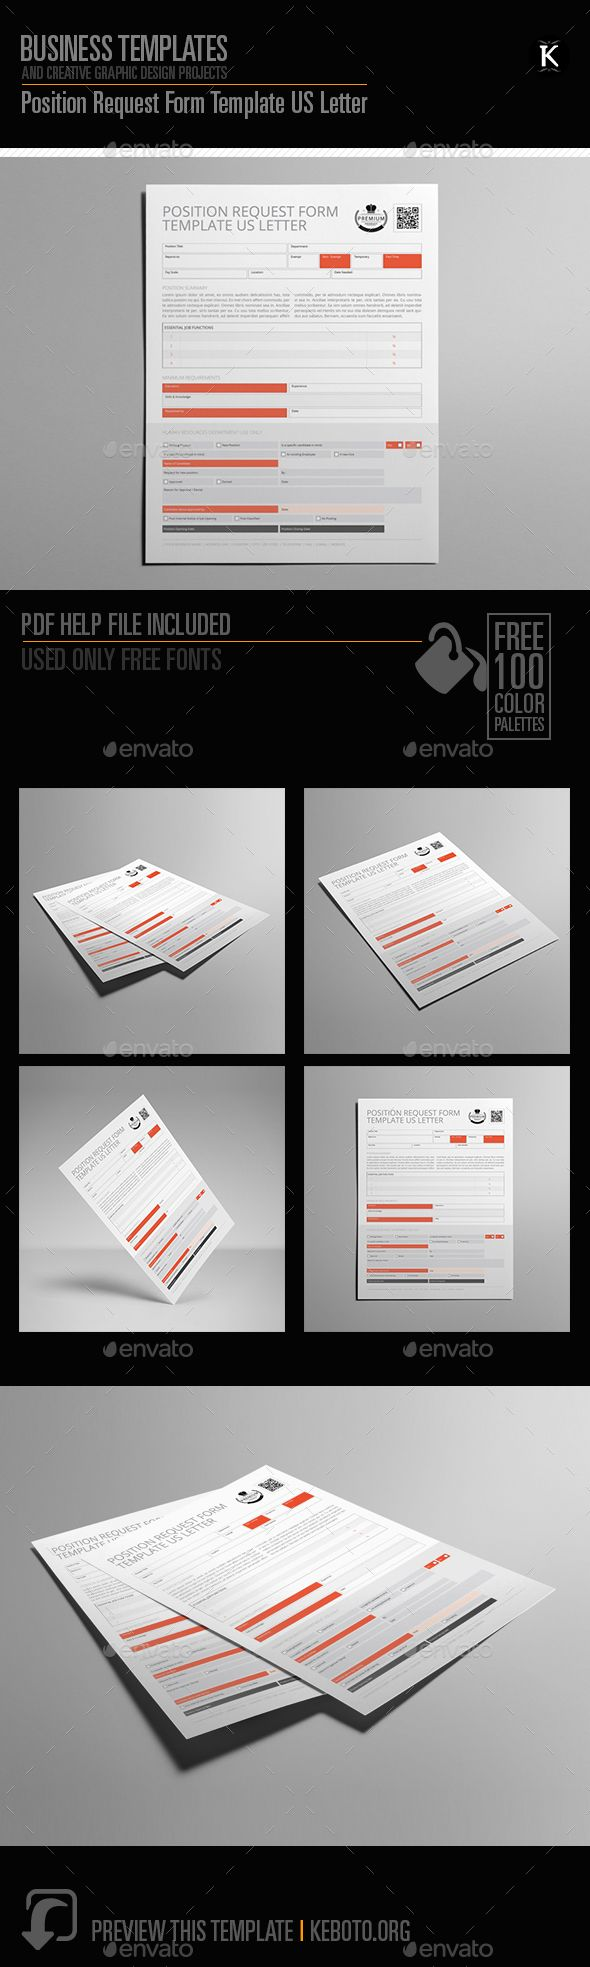 Preview this itemherePosition Request Form Template US LetterSpecifications: Format: U.S. Letter PortraitColor Model: CMYKSoftware